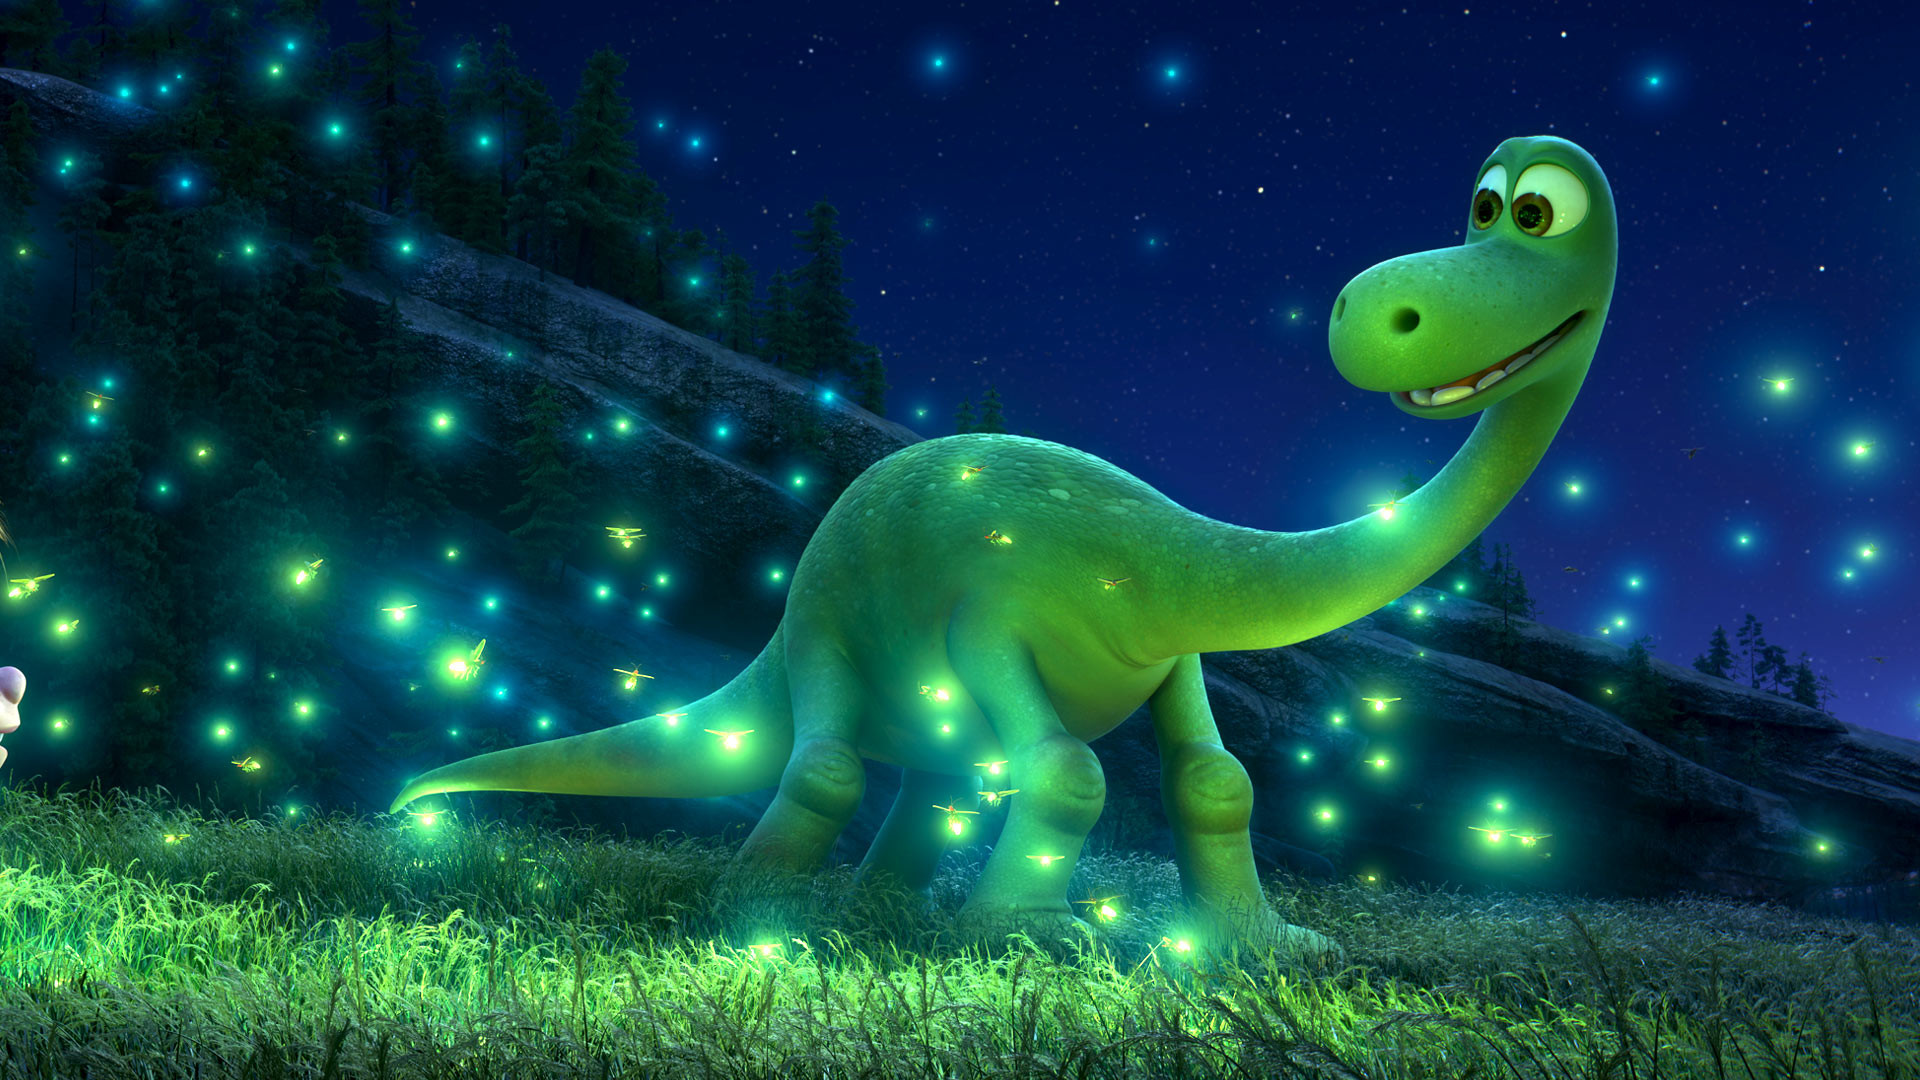 Cute Funny Backgrounds Wallpapers Cave Desktop Background: Cute Dinosaur Backgrounds ·① WallpaperTag